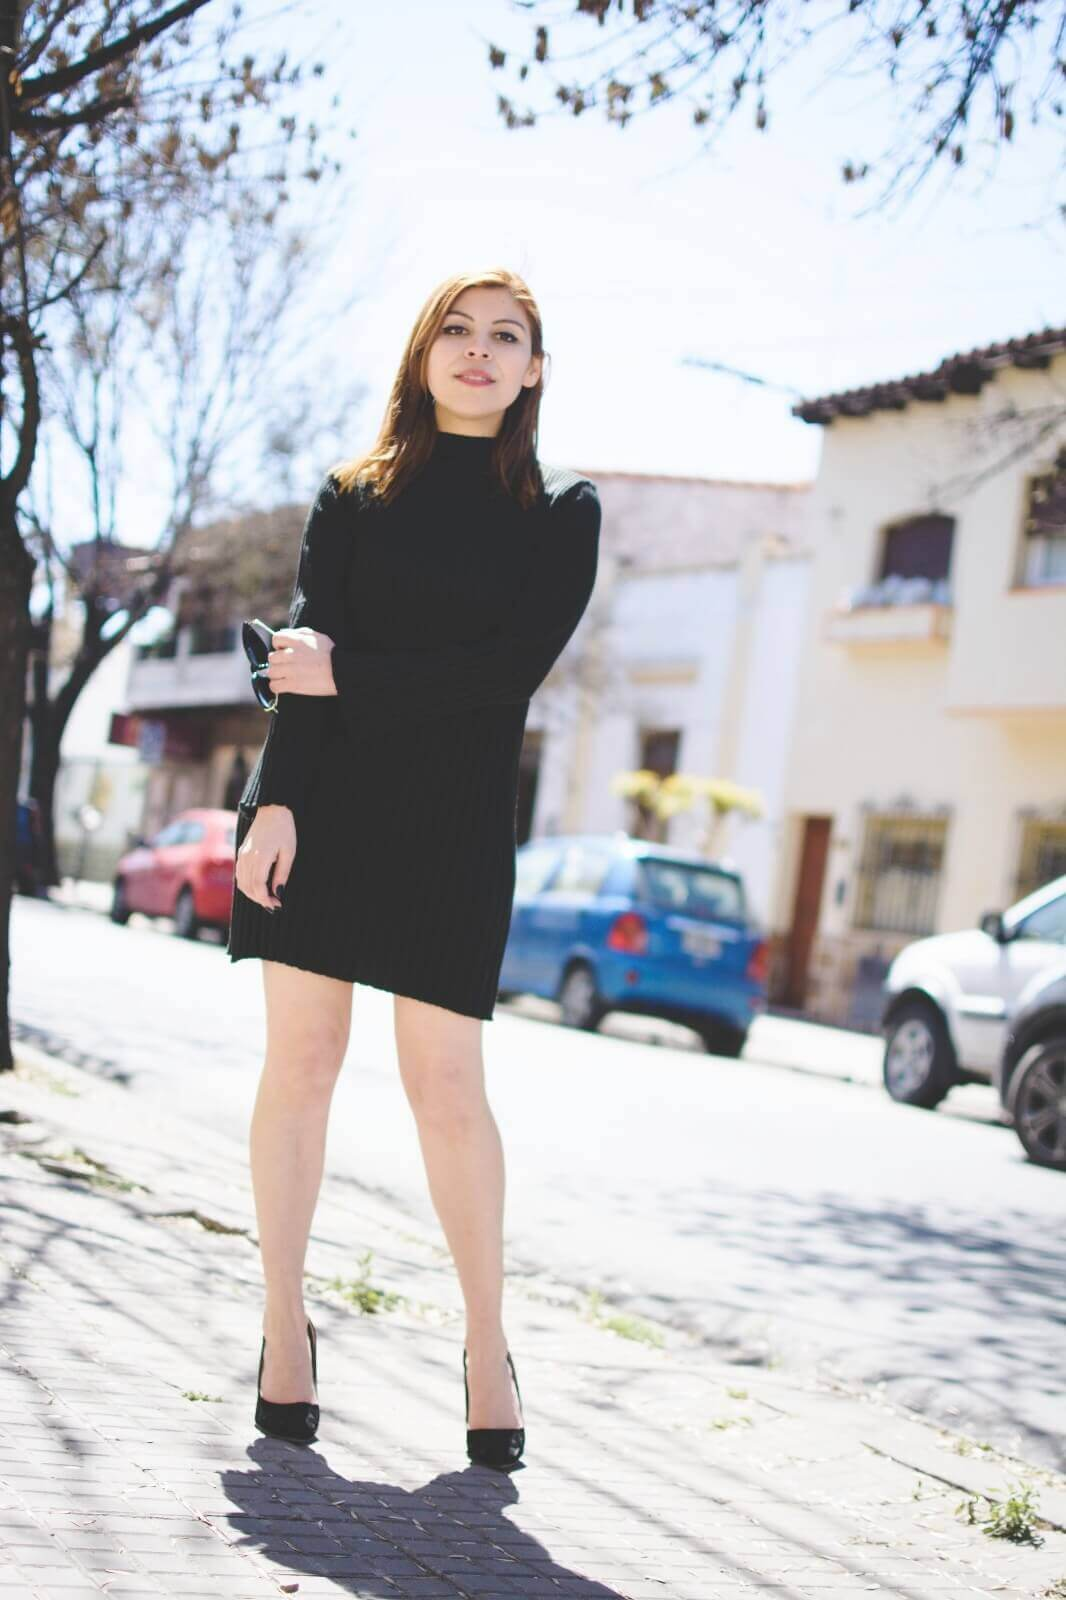 white-fluffy-coat-newchic-fall-little-black-dress-zaful-shoes-gamiss-sunglasses-deborah-ferrero-style-by-deb04